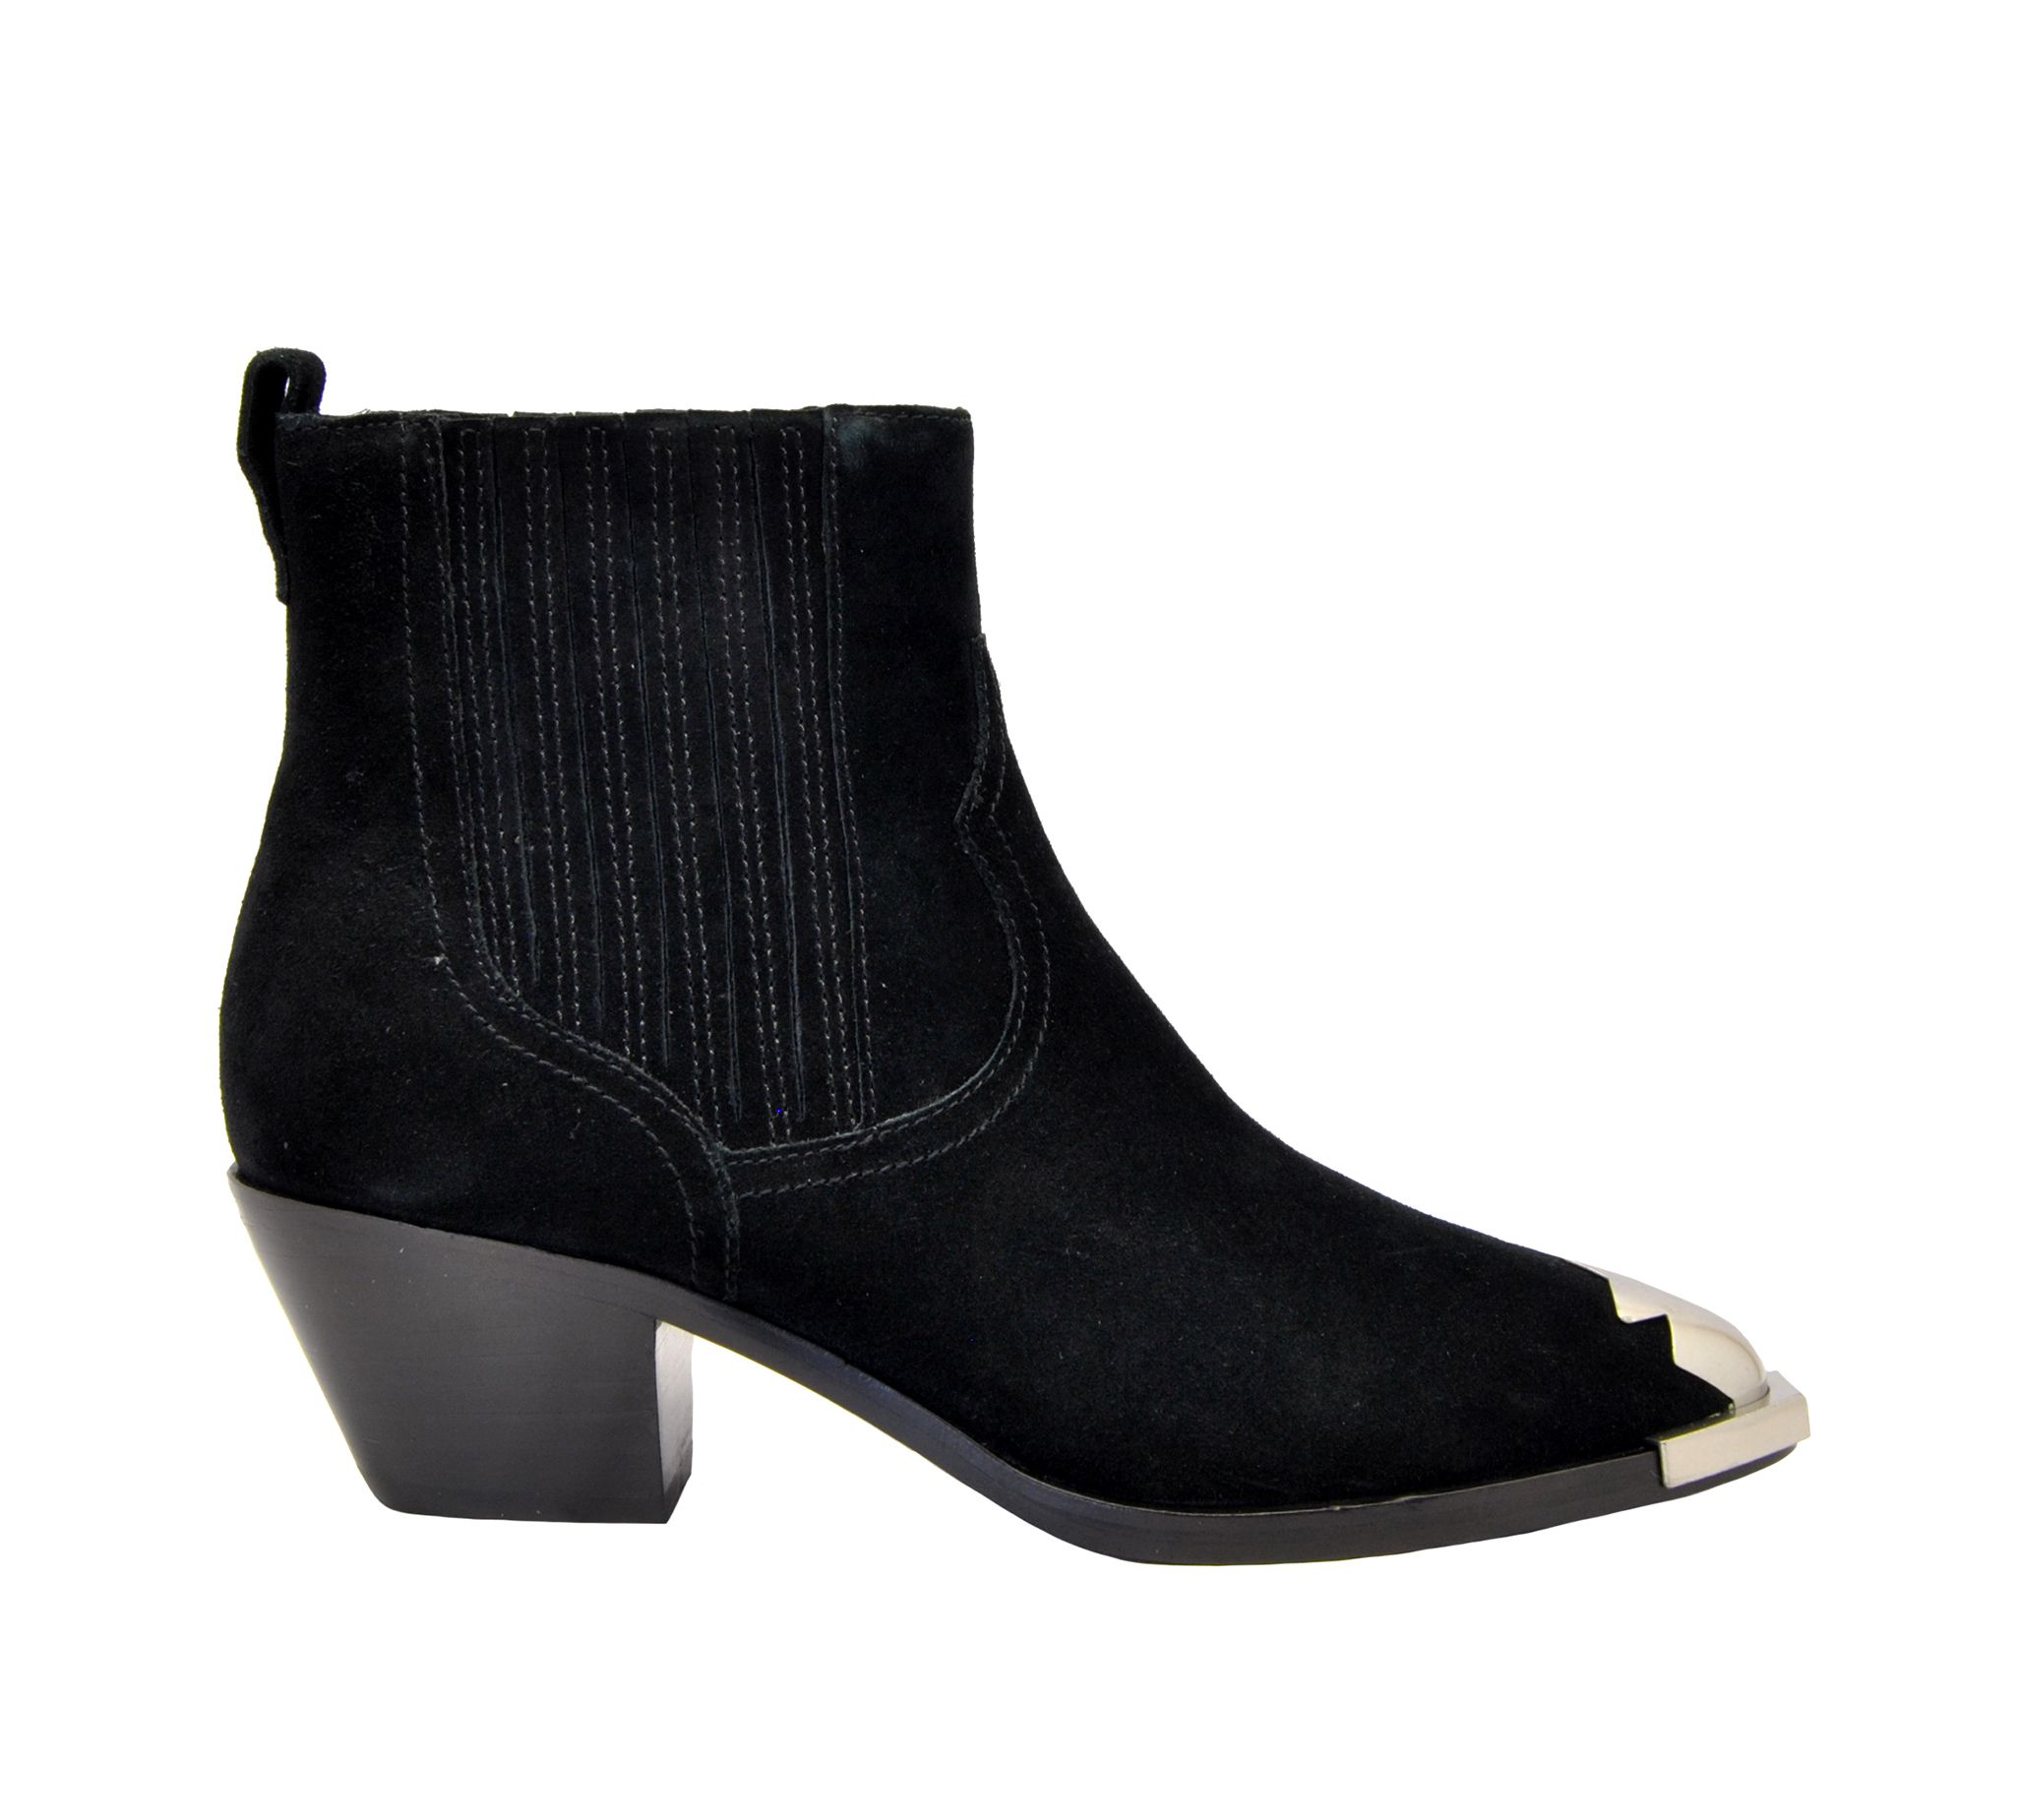 sale retailer new cheap new arrival Black Suede Ankle Boots